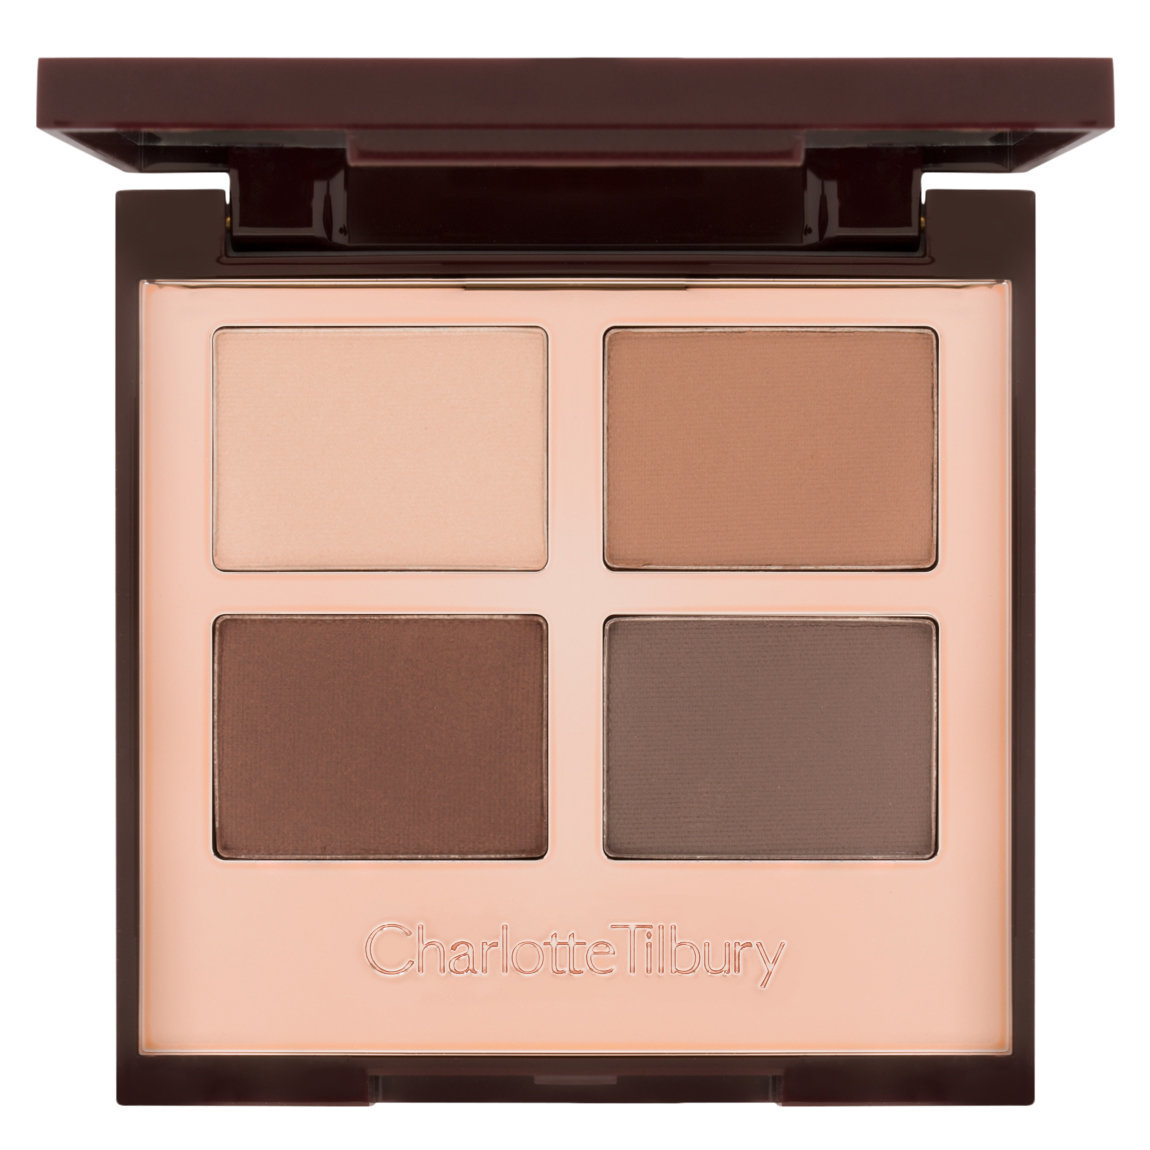 Charlotte Tilbury Luxury Palette The Sophisticate product swatch.